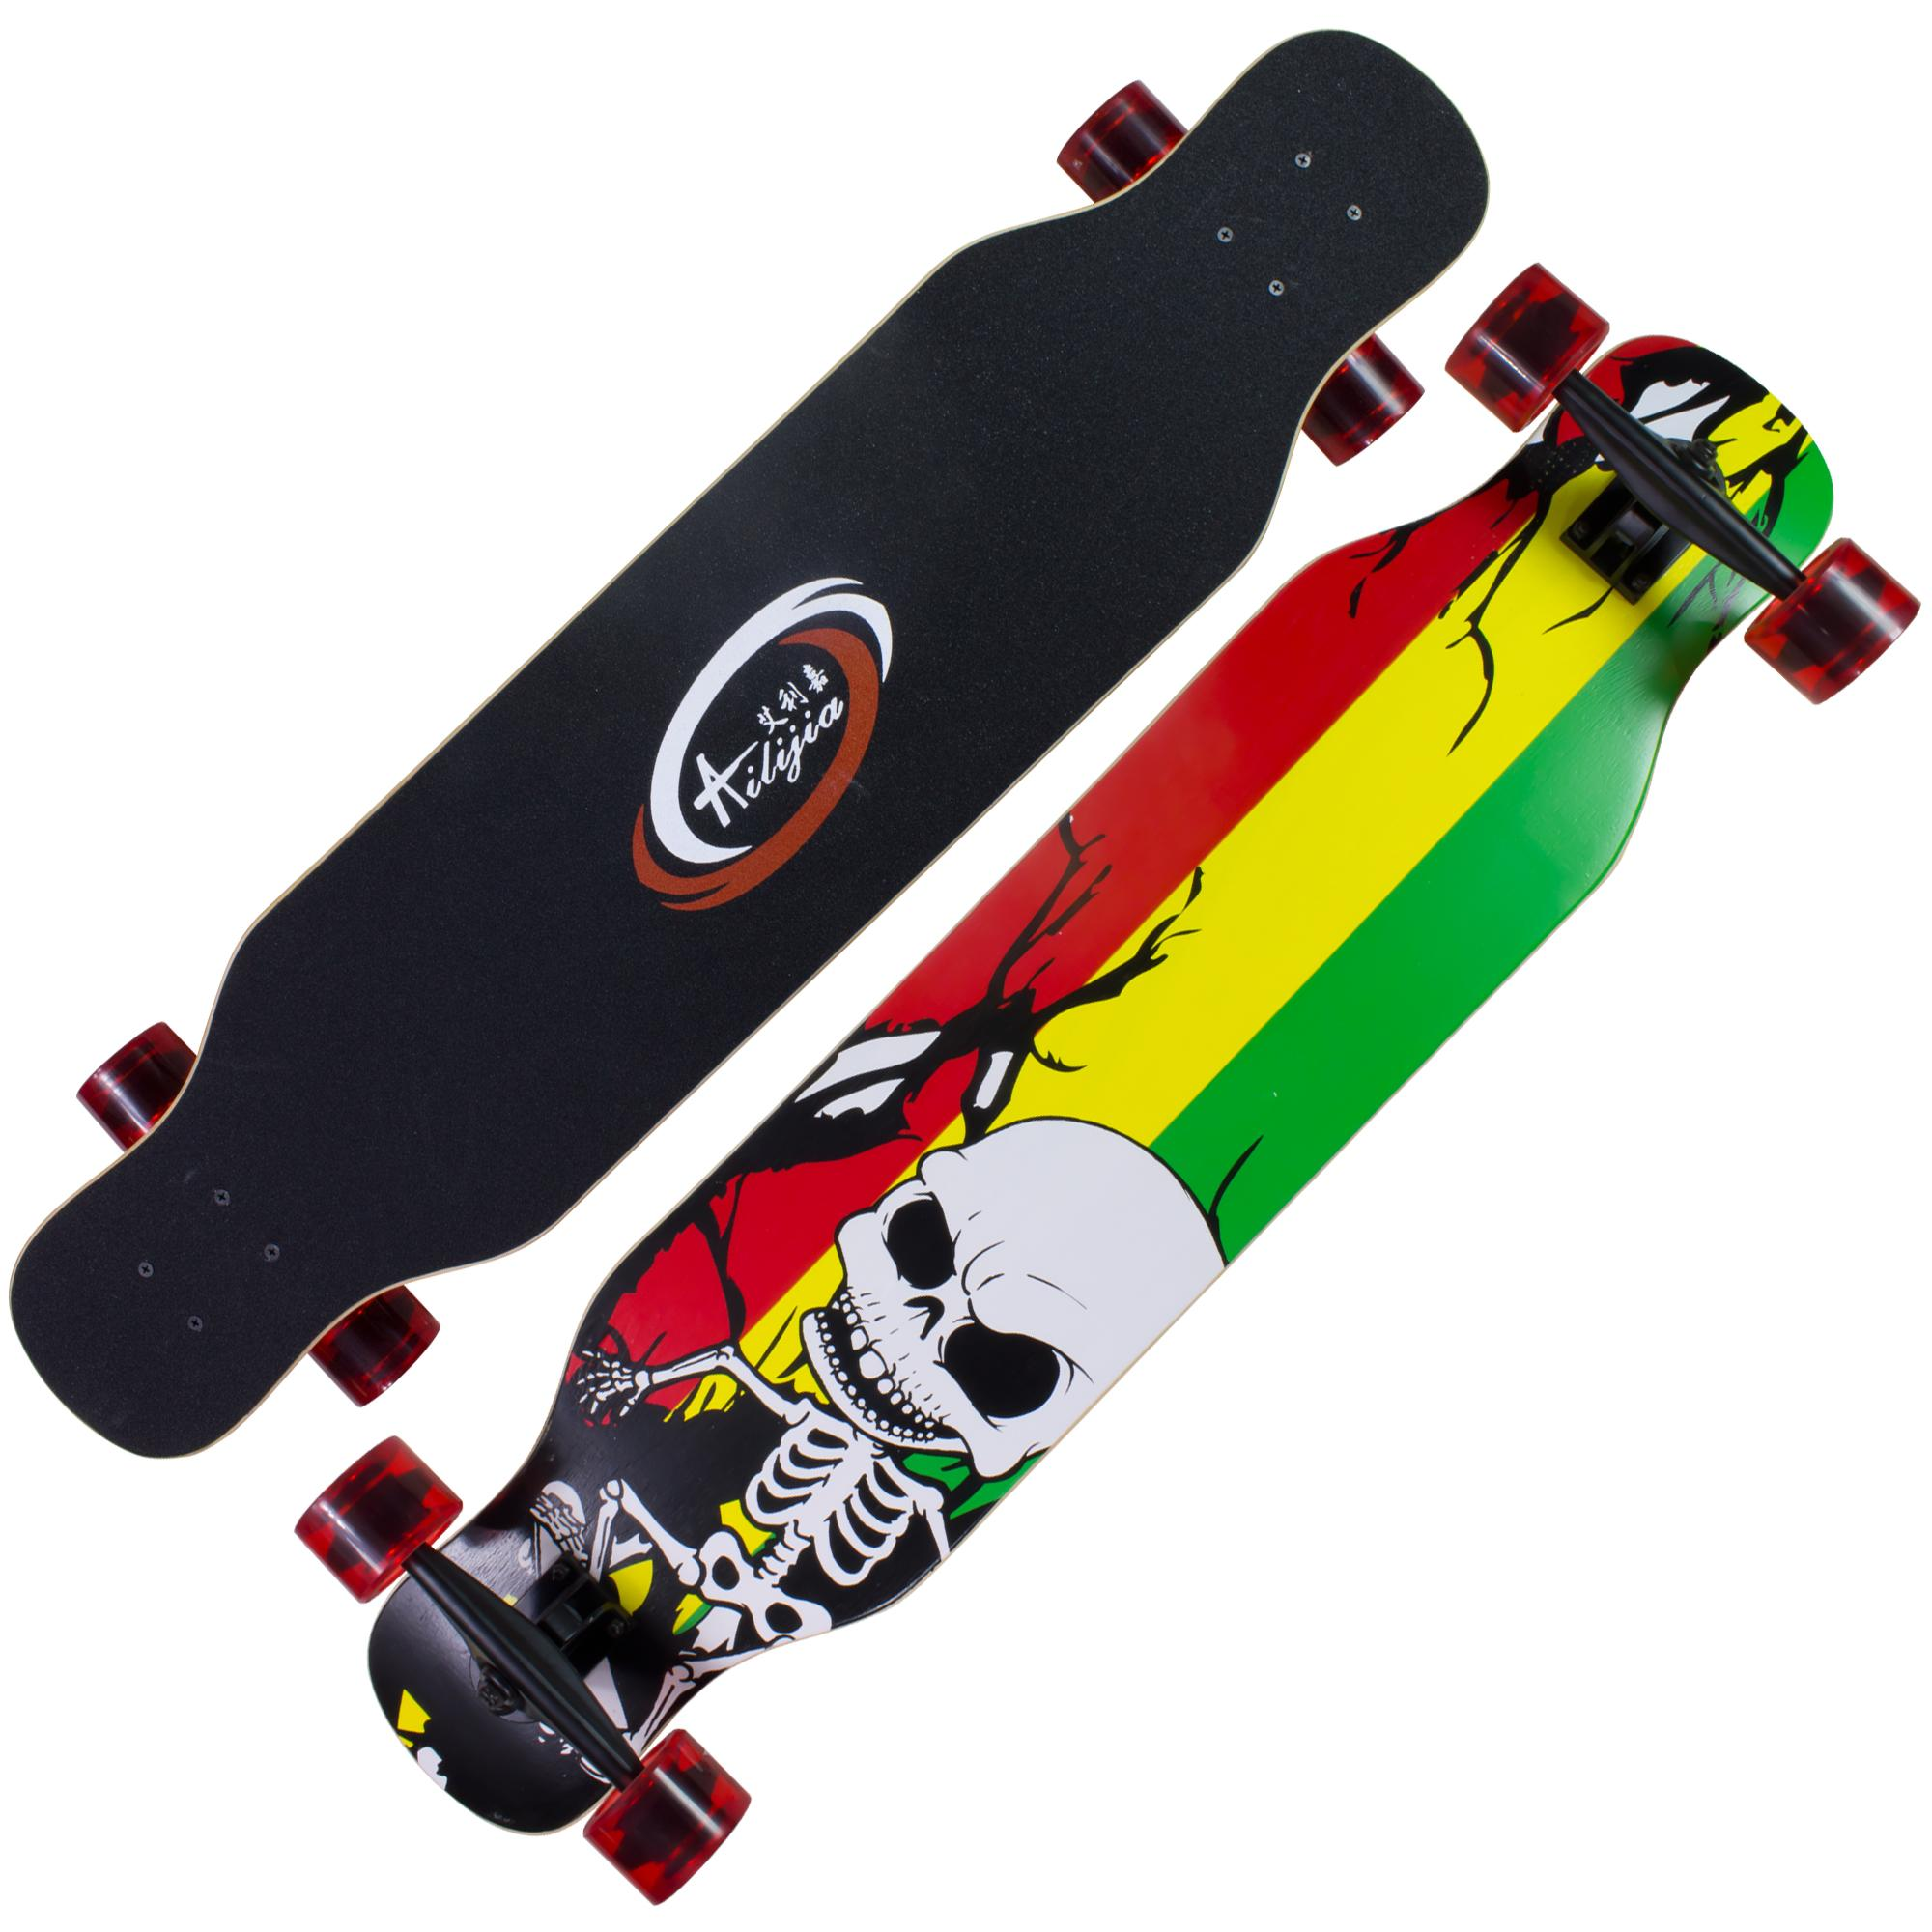 AILIJIA 42 x 9 inches Downhill Dancing Freestyle Long board Skateboard Reggae Skeleton (Trans Red) image